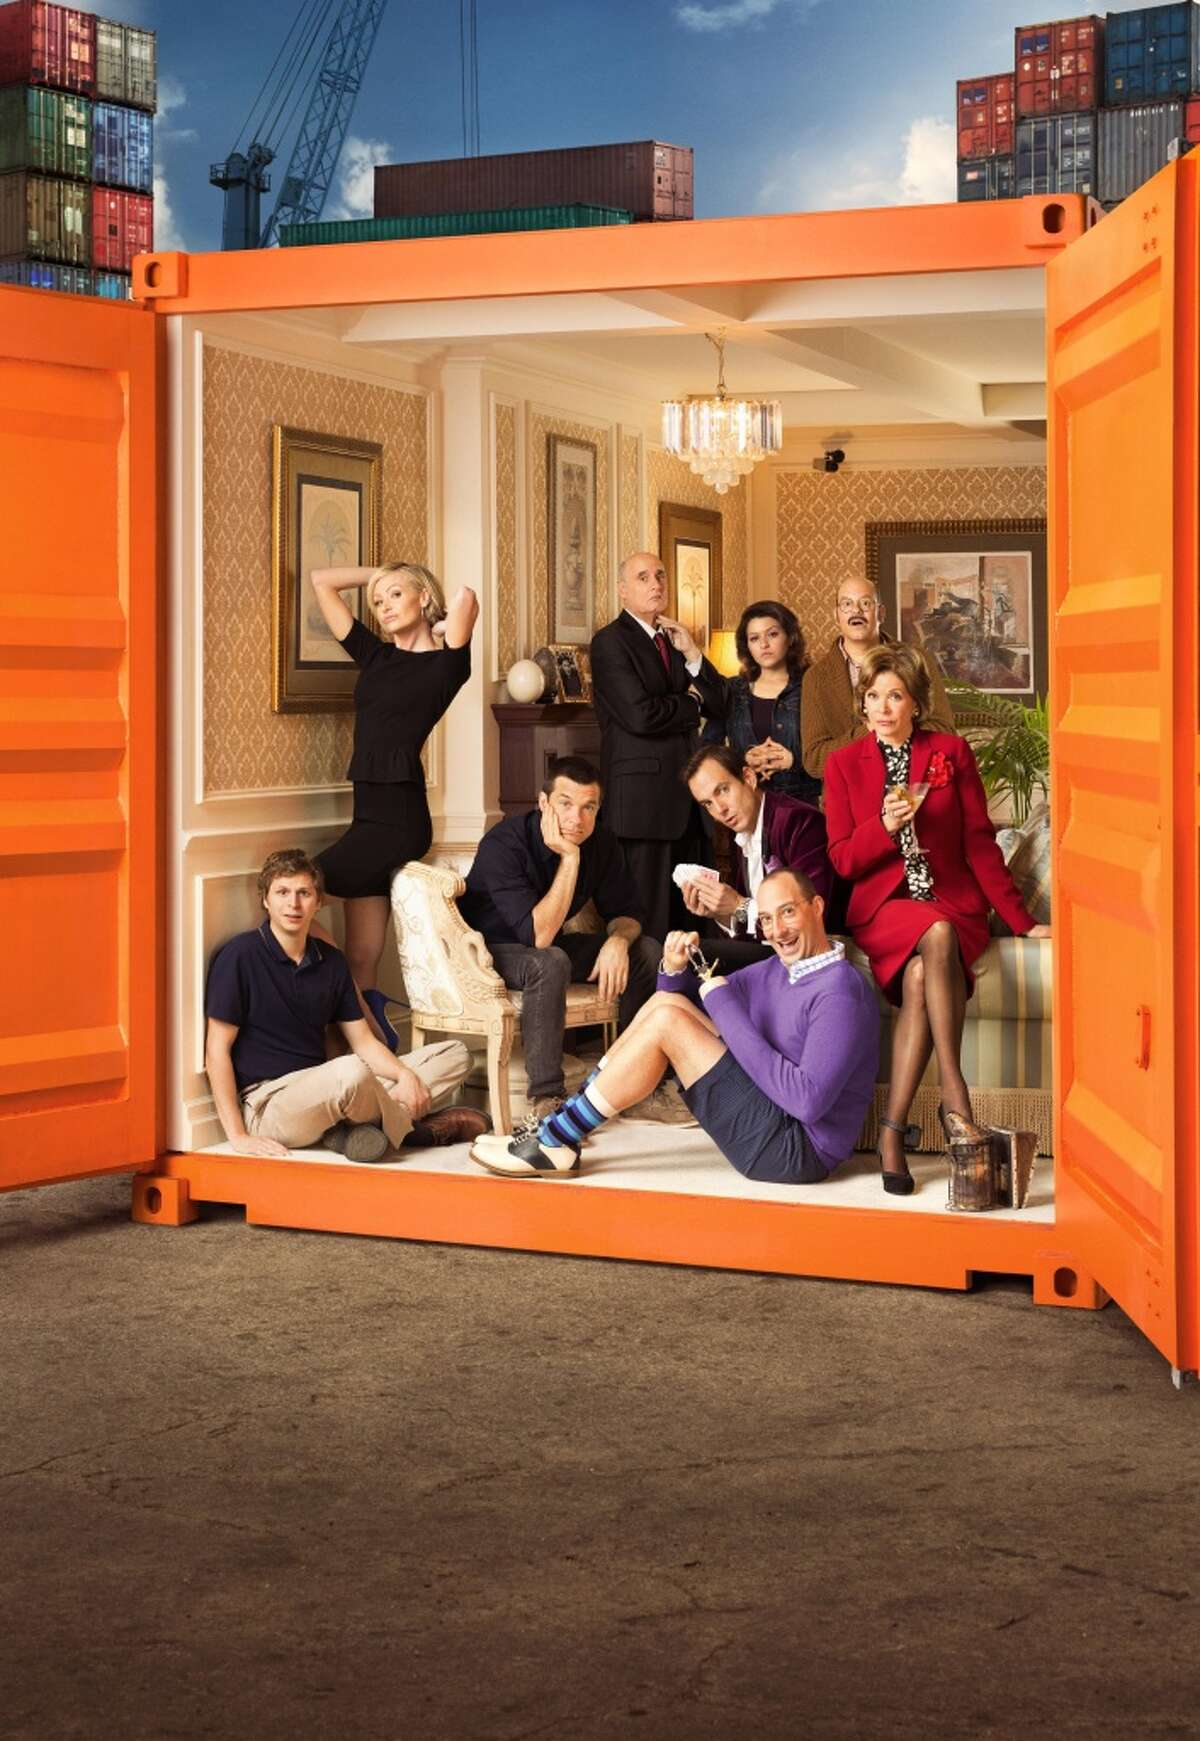 Arrested Development: Tuesday, May 29 The Bluth family are back together, and finally getting the award they think they deserve - for family of the year. A development which will help Lindsay as she begins her campaign for Congress, to become 'part of the problem'. But whatever happens, Michael will always come back to save the family. Probably. (Netflix)